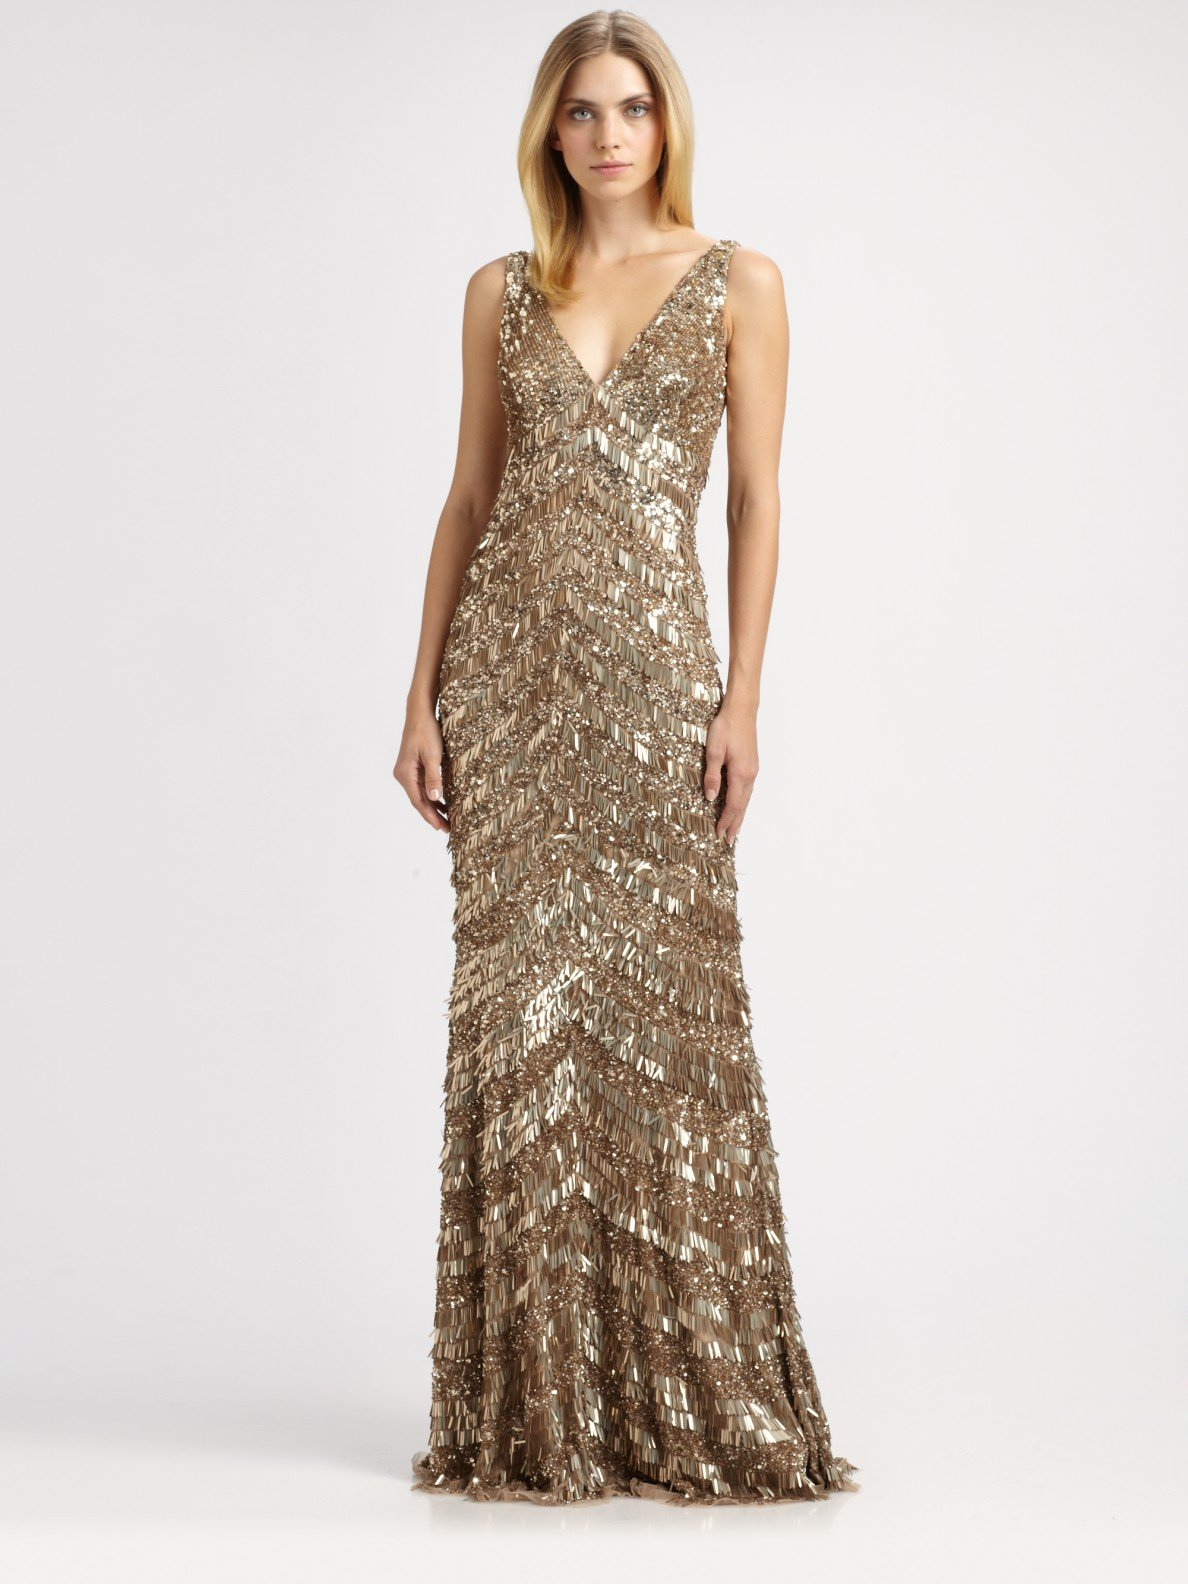 Lyst - Theia Art Deco Fringed Gown in Metallic